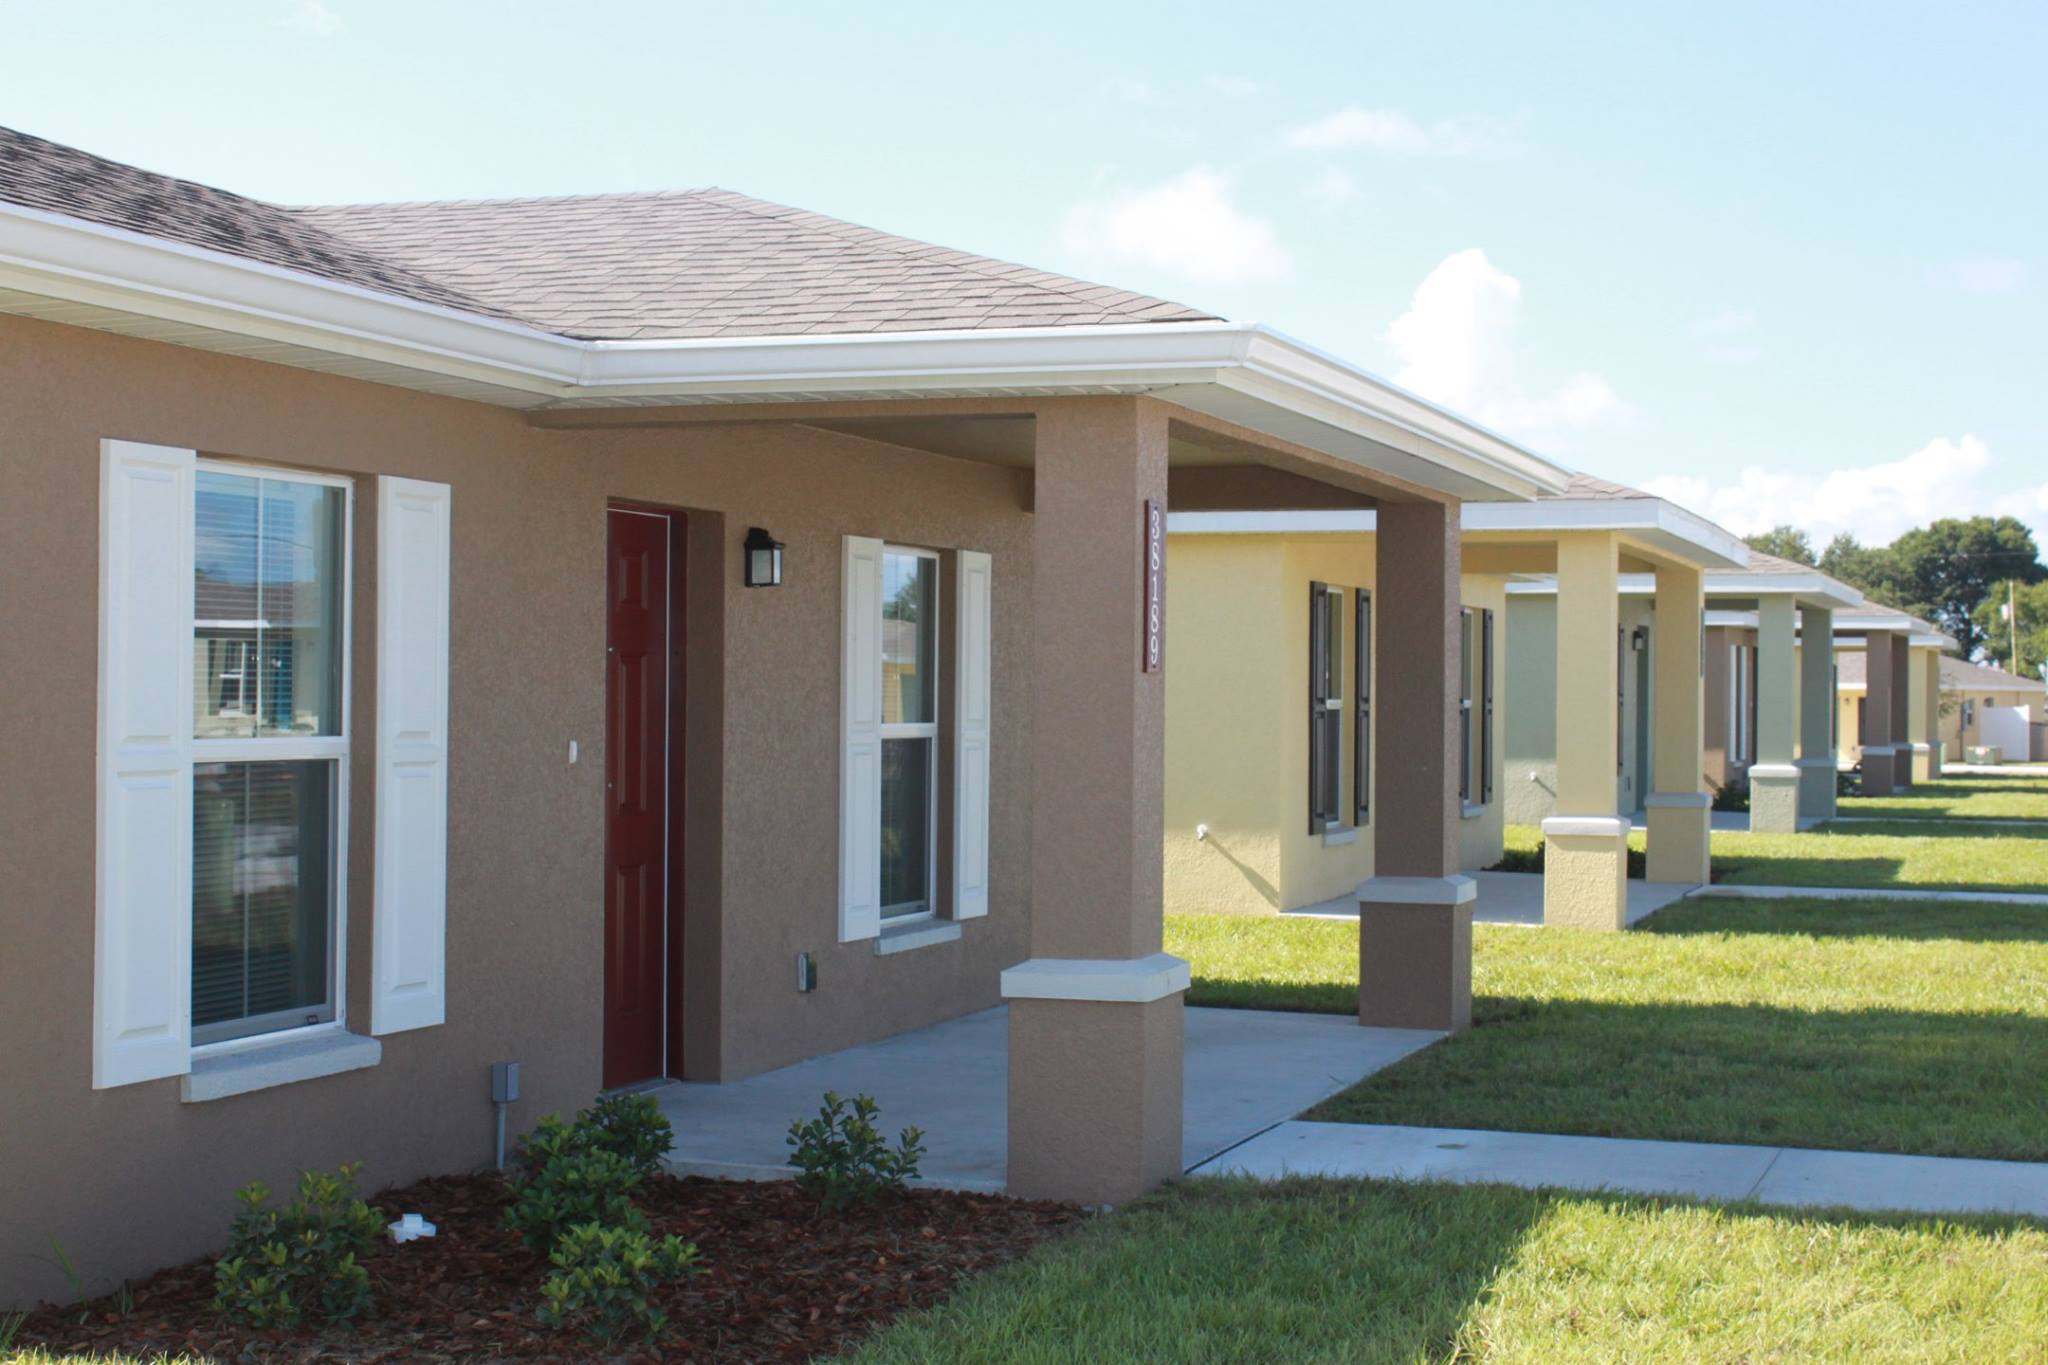 Location Avon Park FL Year Completed 2016 Description 44 Single Family Residential Units And 1 Clubhouse Building